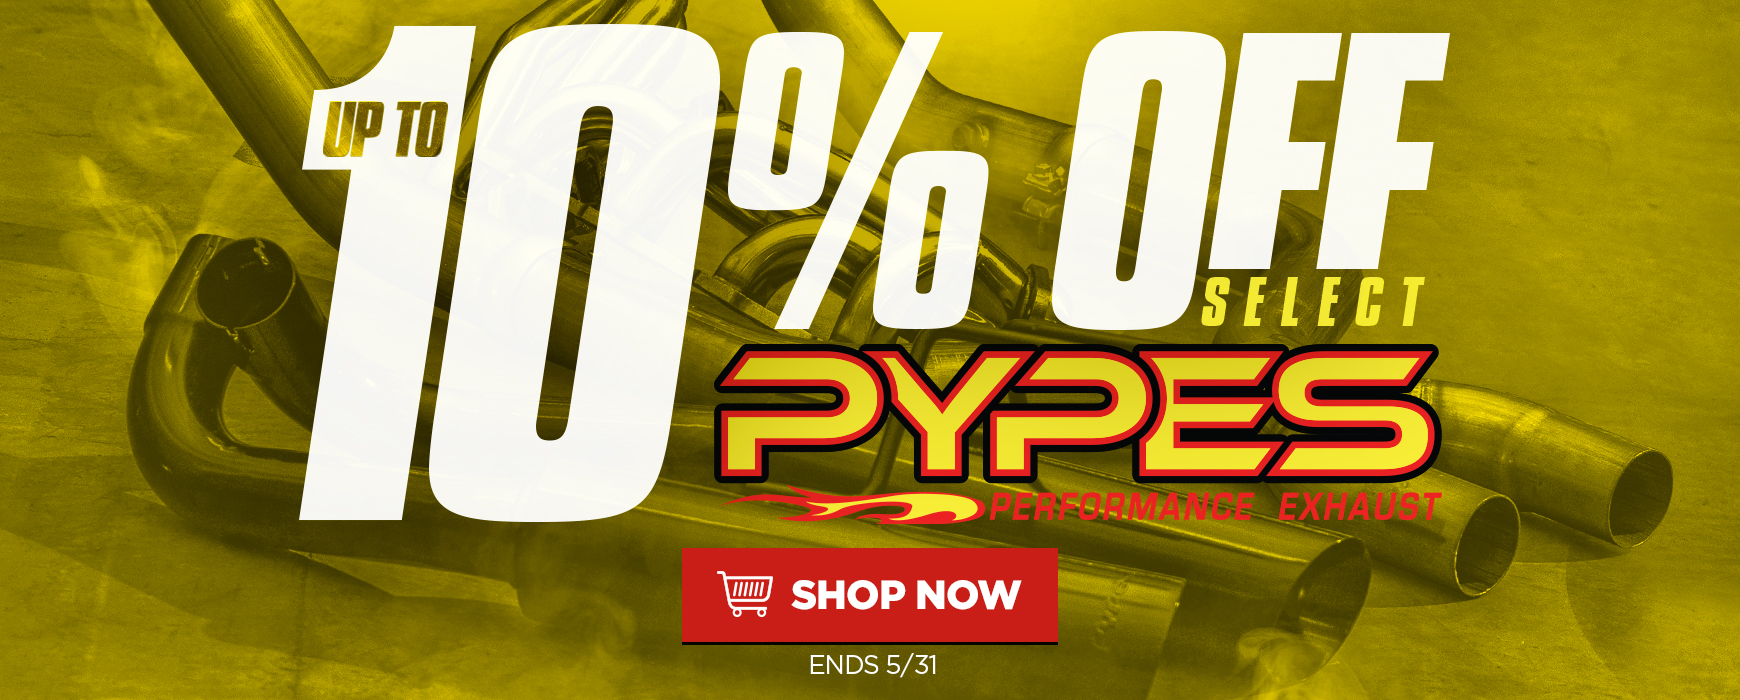 Pypes Summer Sale